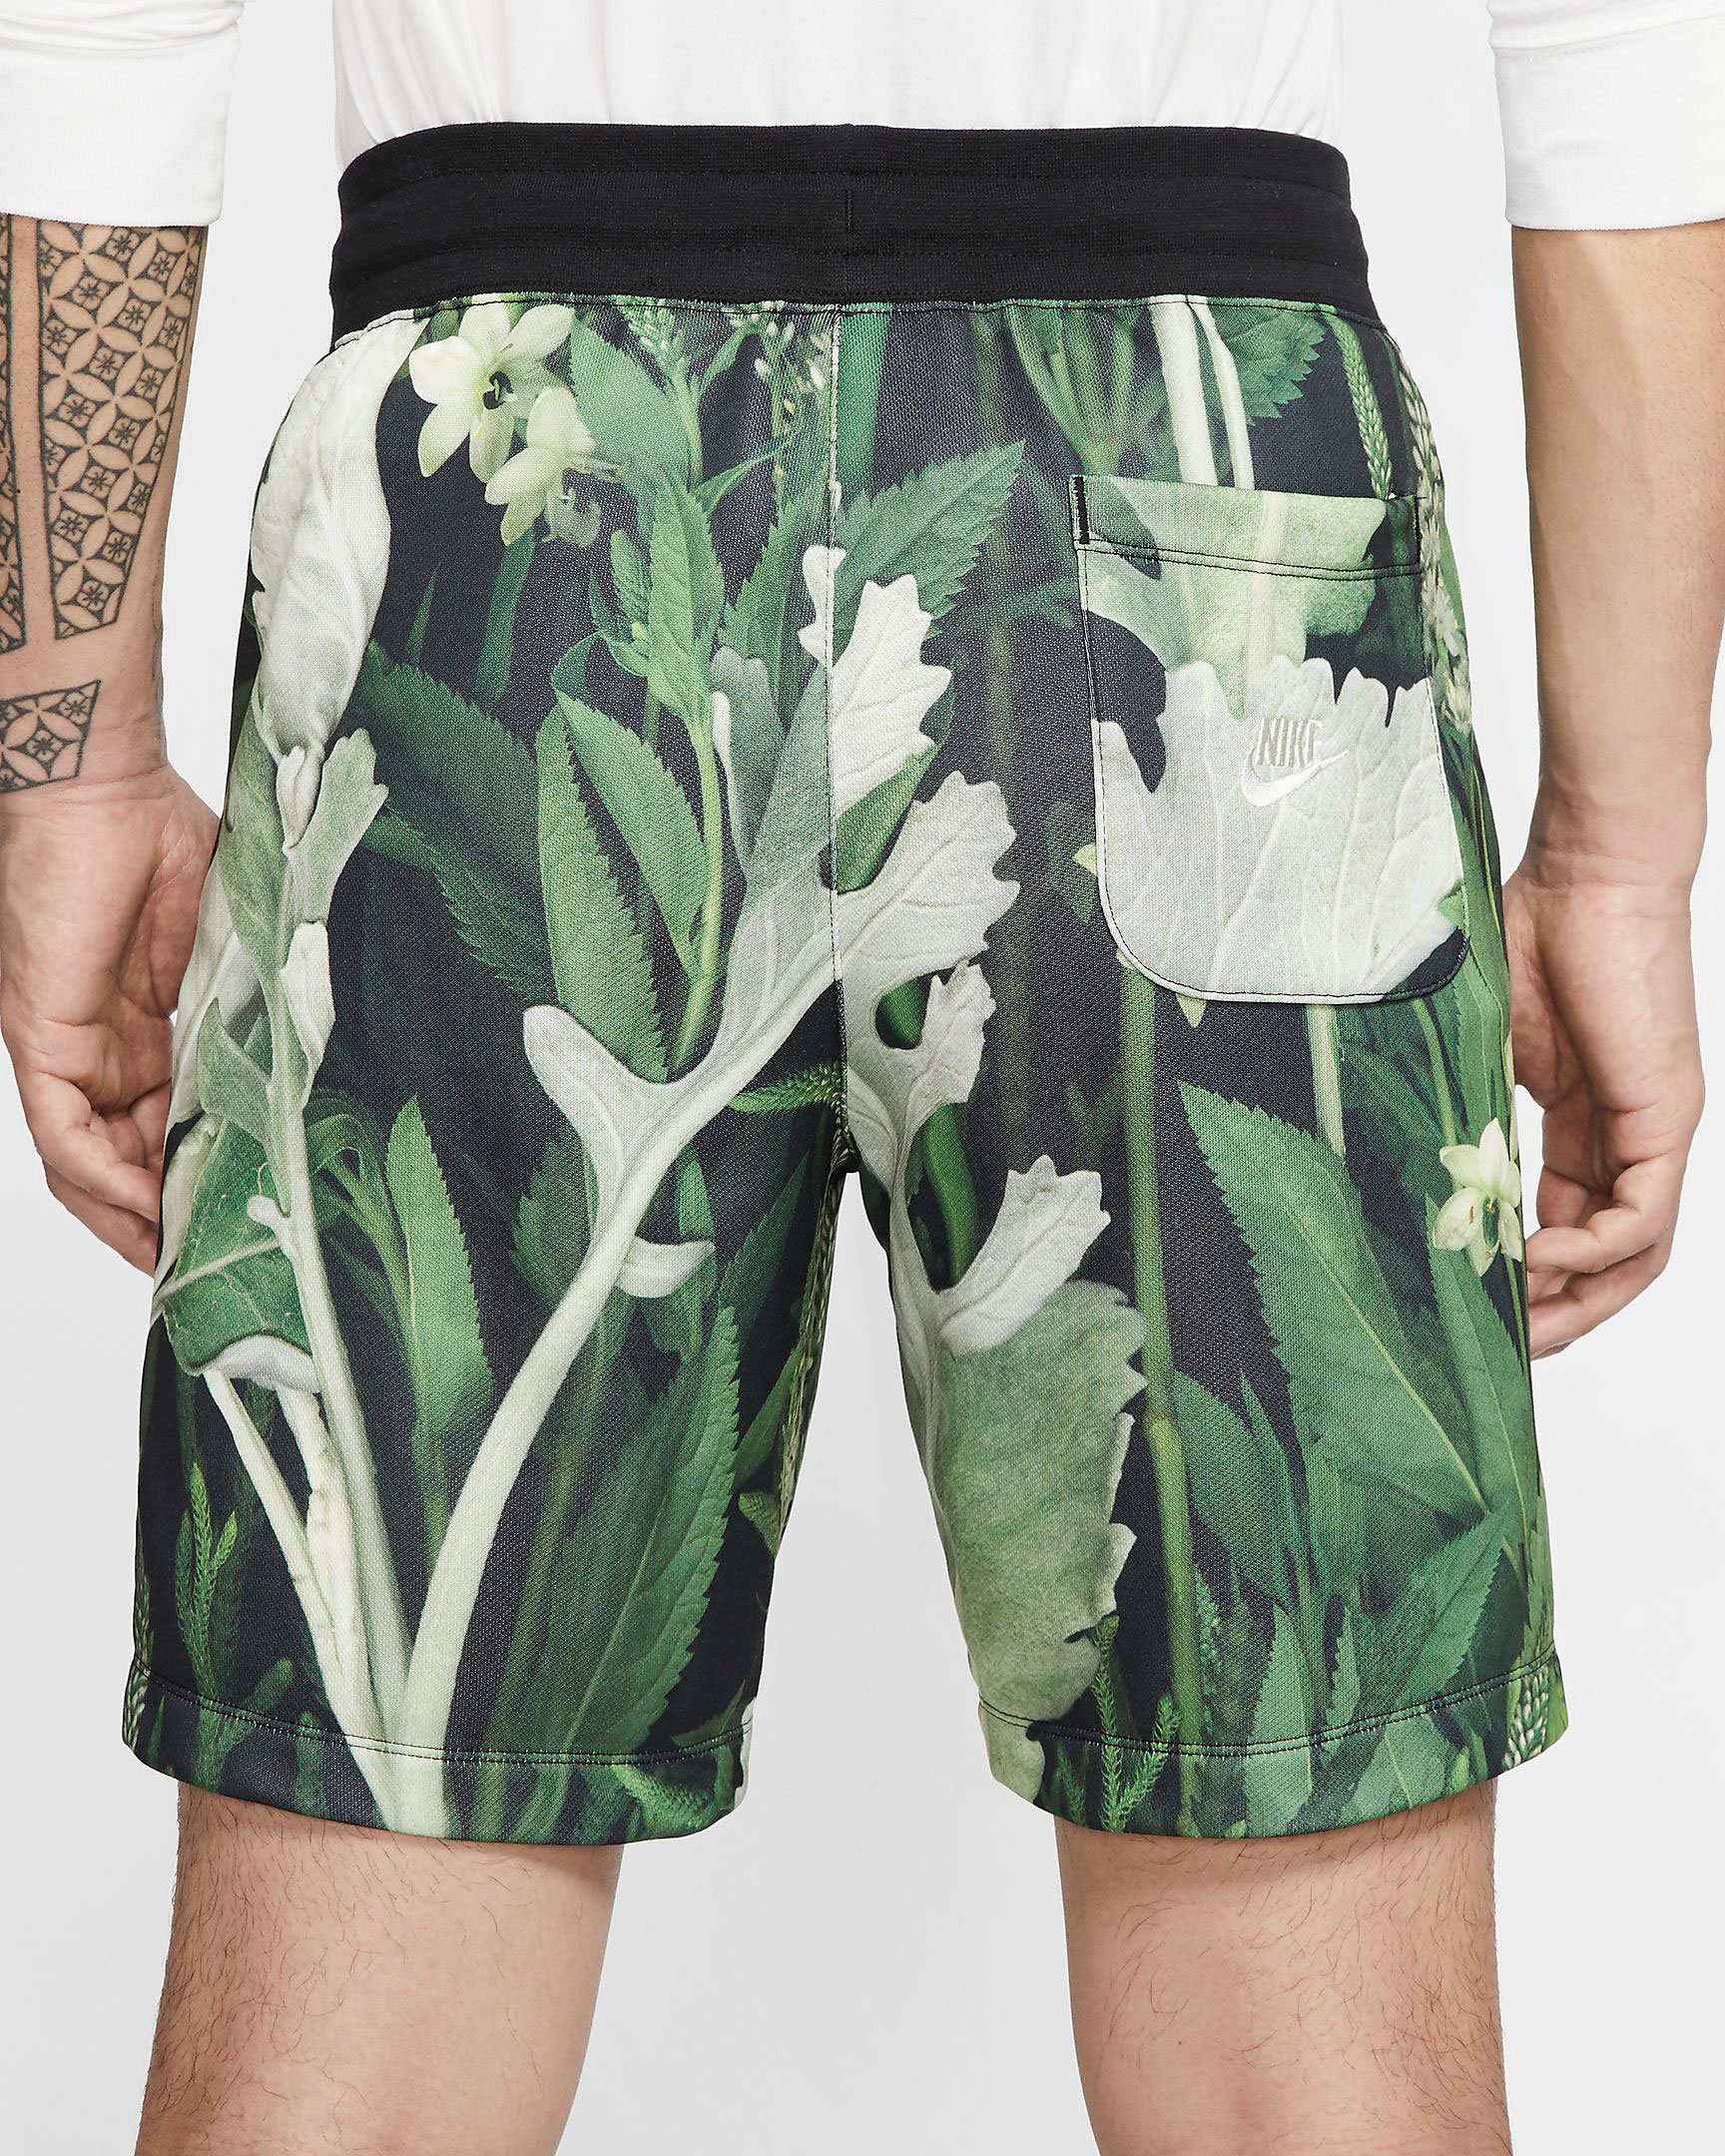 nike-just-do-it-floral-green-shorts-2